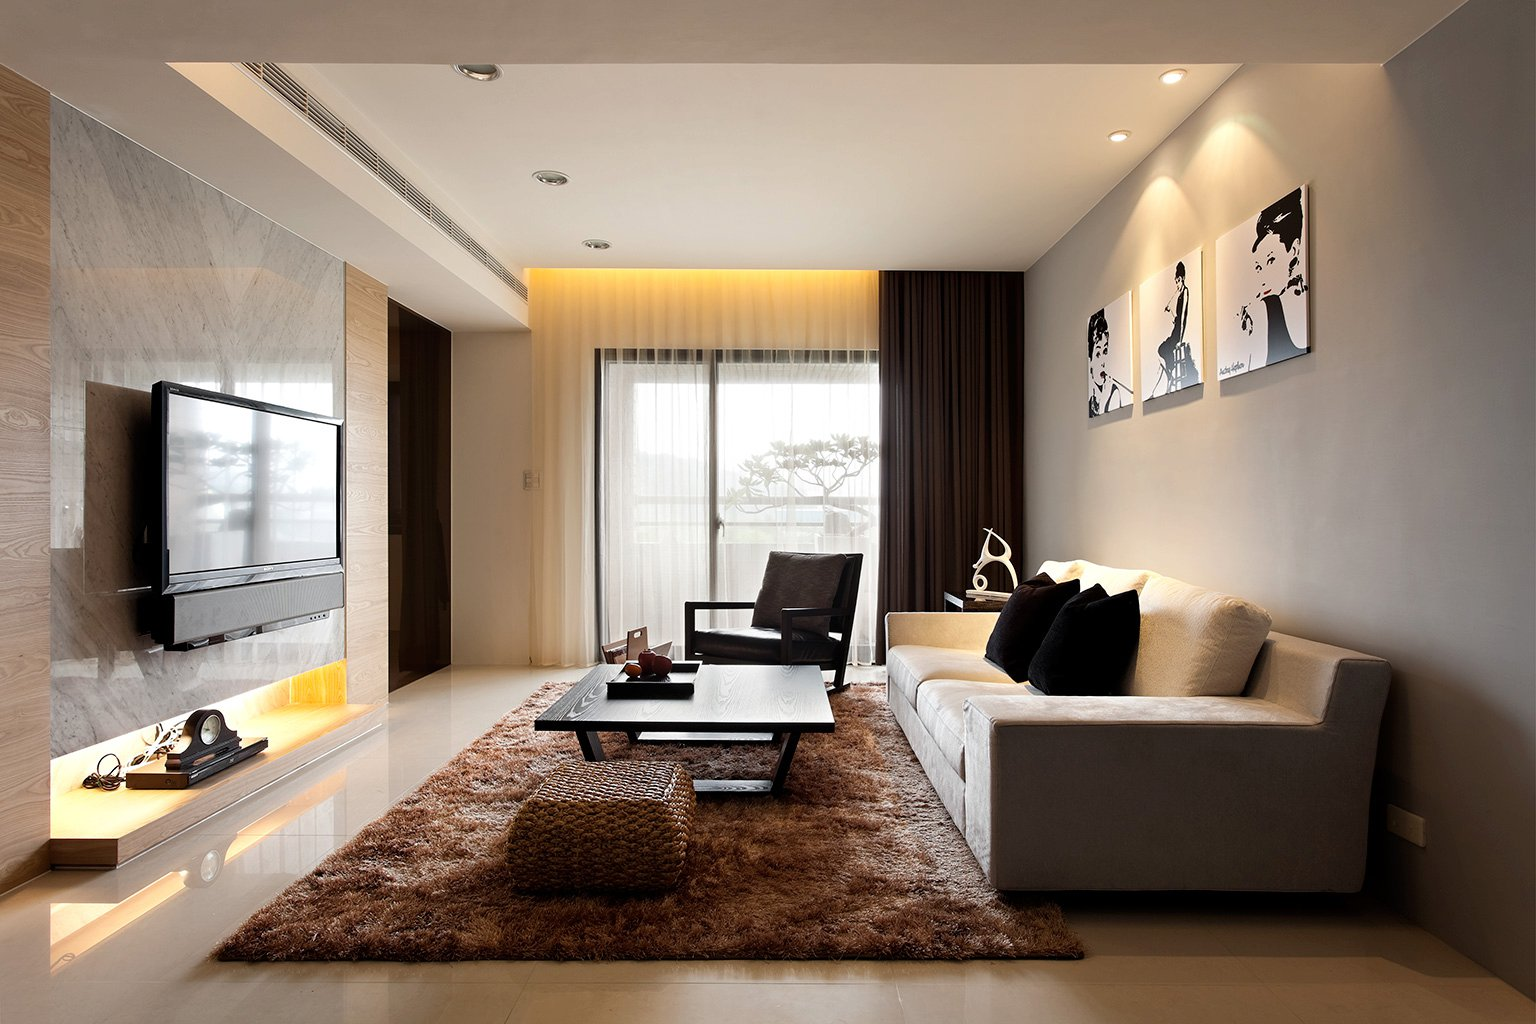 Modern minimalist decor with a homey flow for Interior decoration designs living room